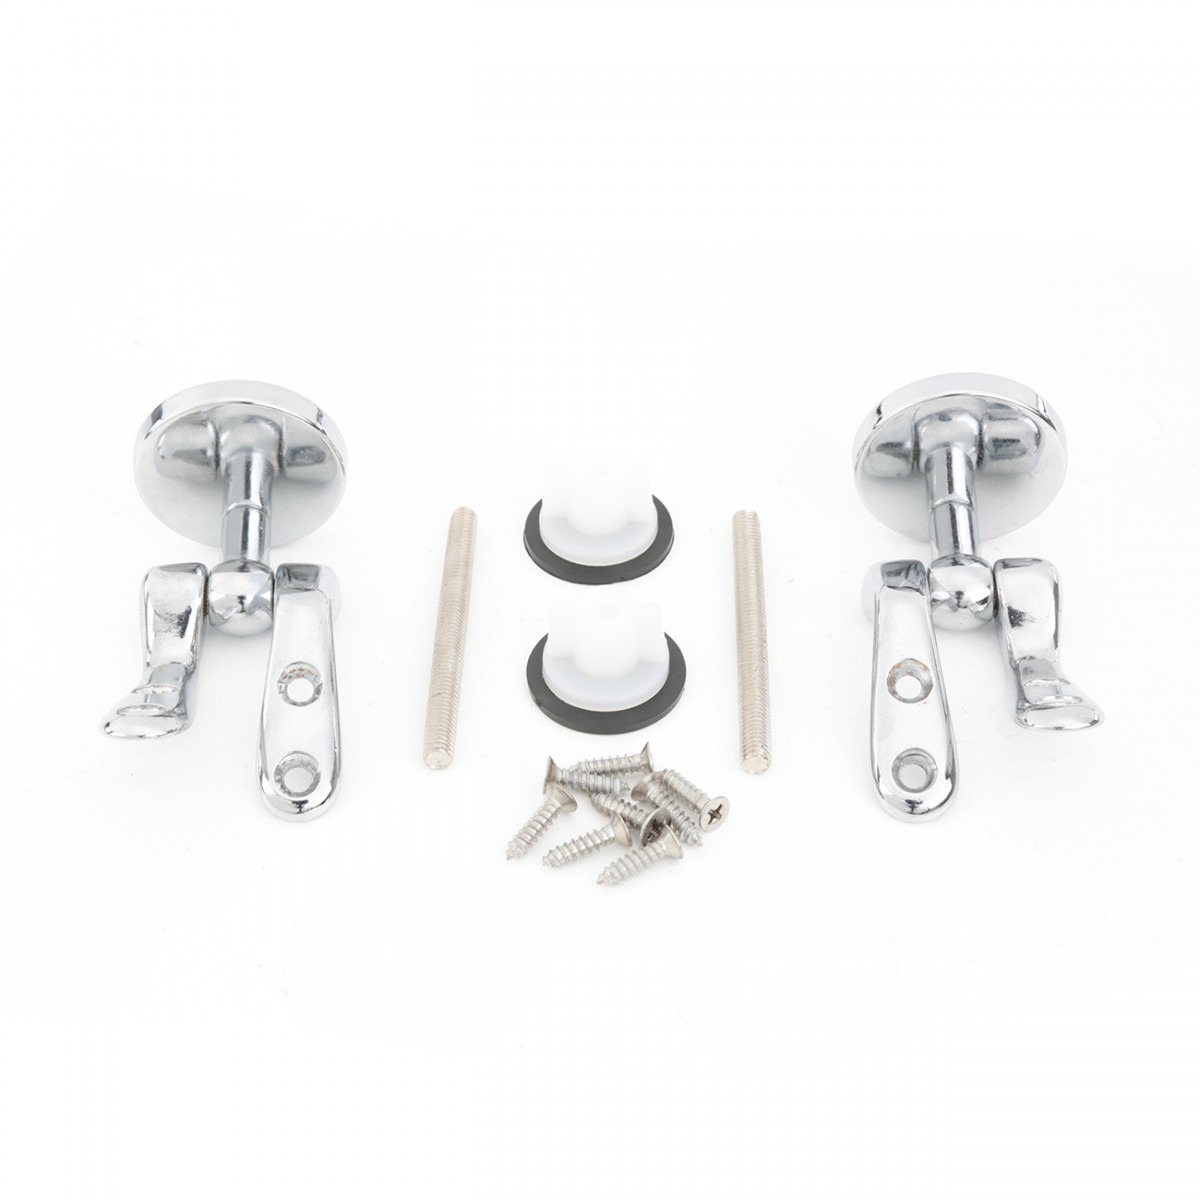 Solid Brass Pair Toilet Seat Hinge Replacement Chrome Toilet Seat Hinges Replacement Toilet Seat Replacement Parts Chrome Toilet Seat Hinge